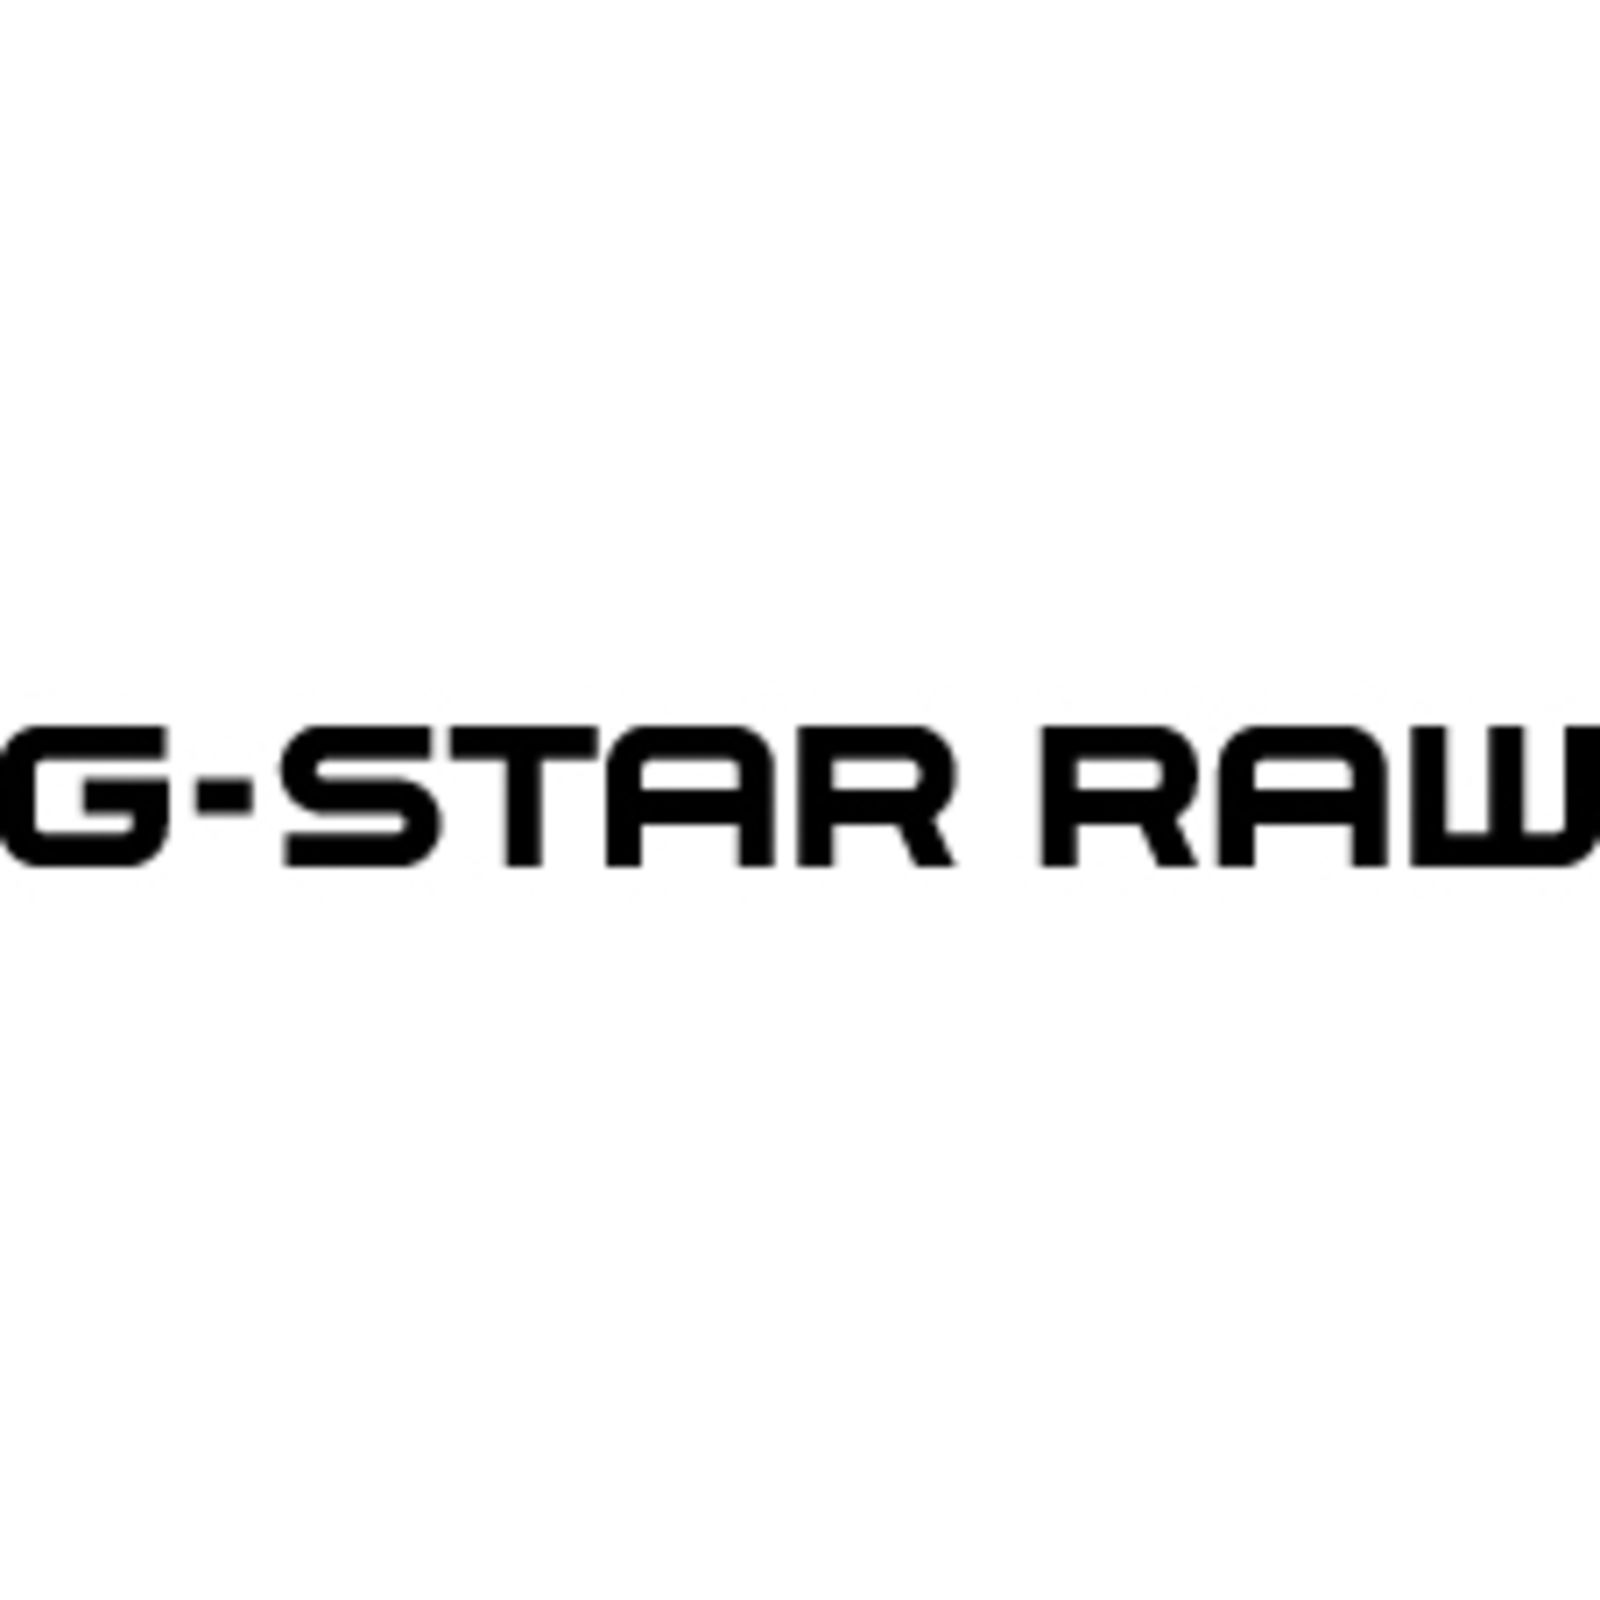 G-STAR RAW by Marc Newson (Bild 1)